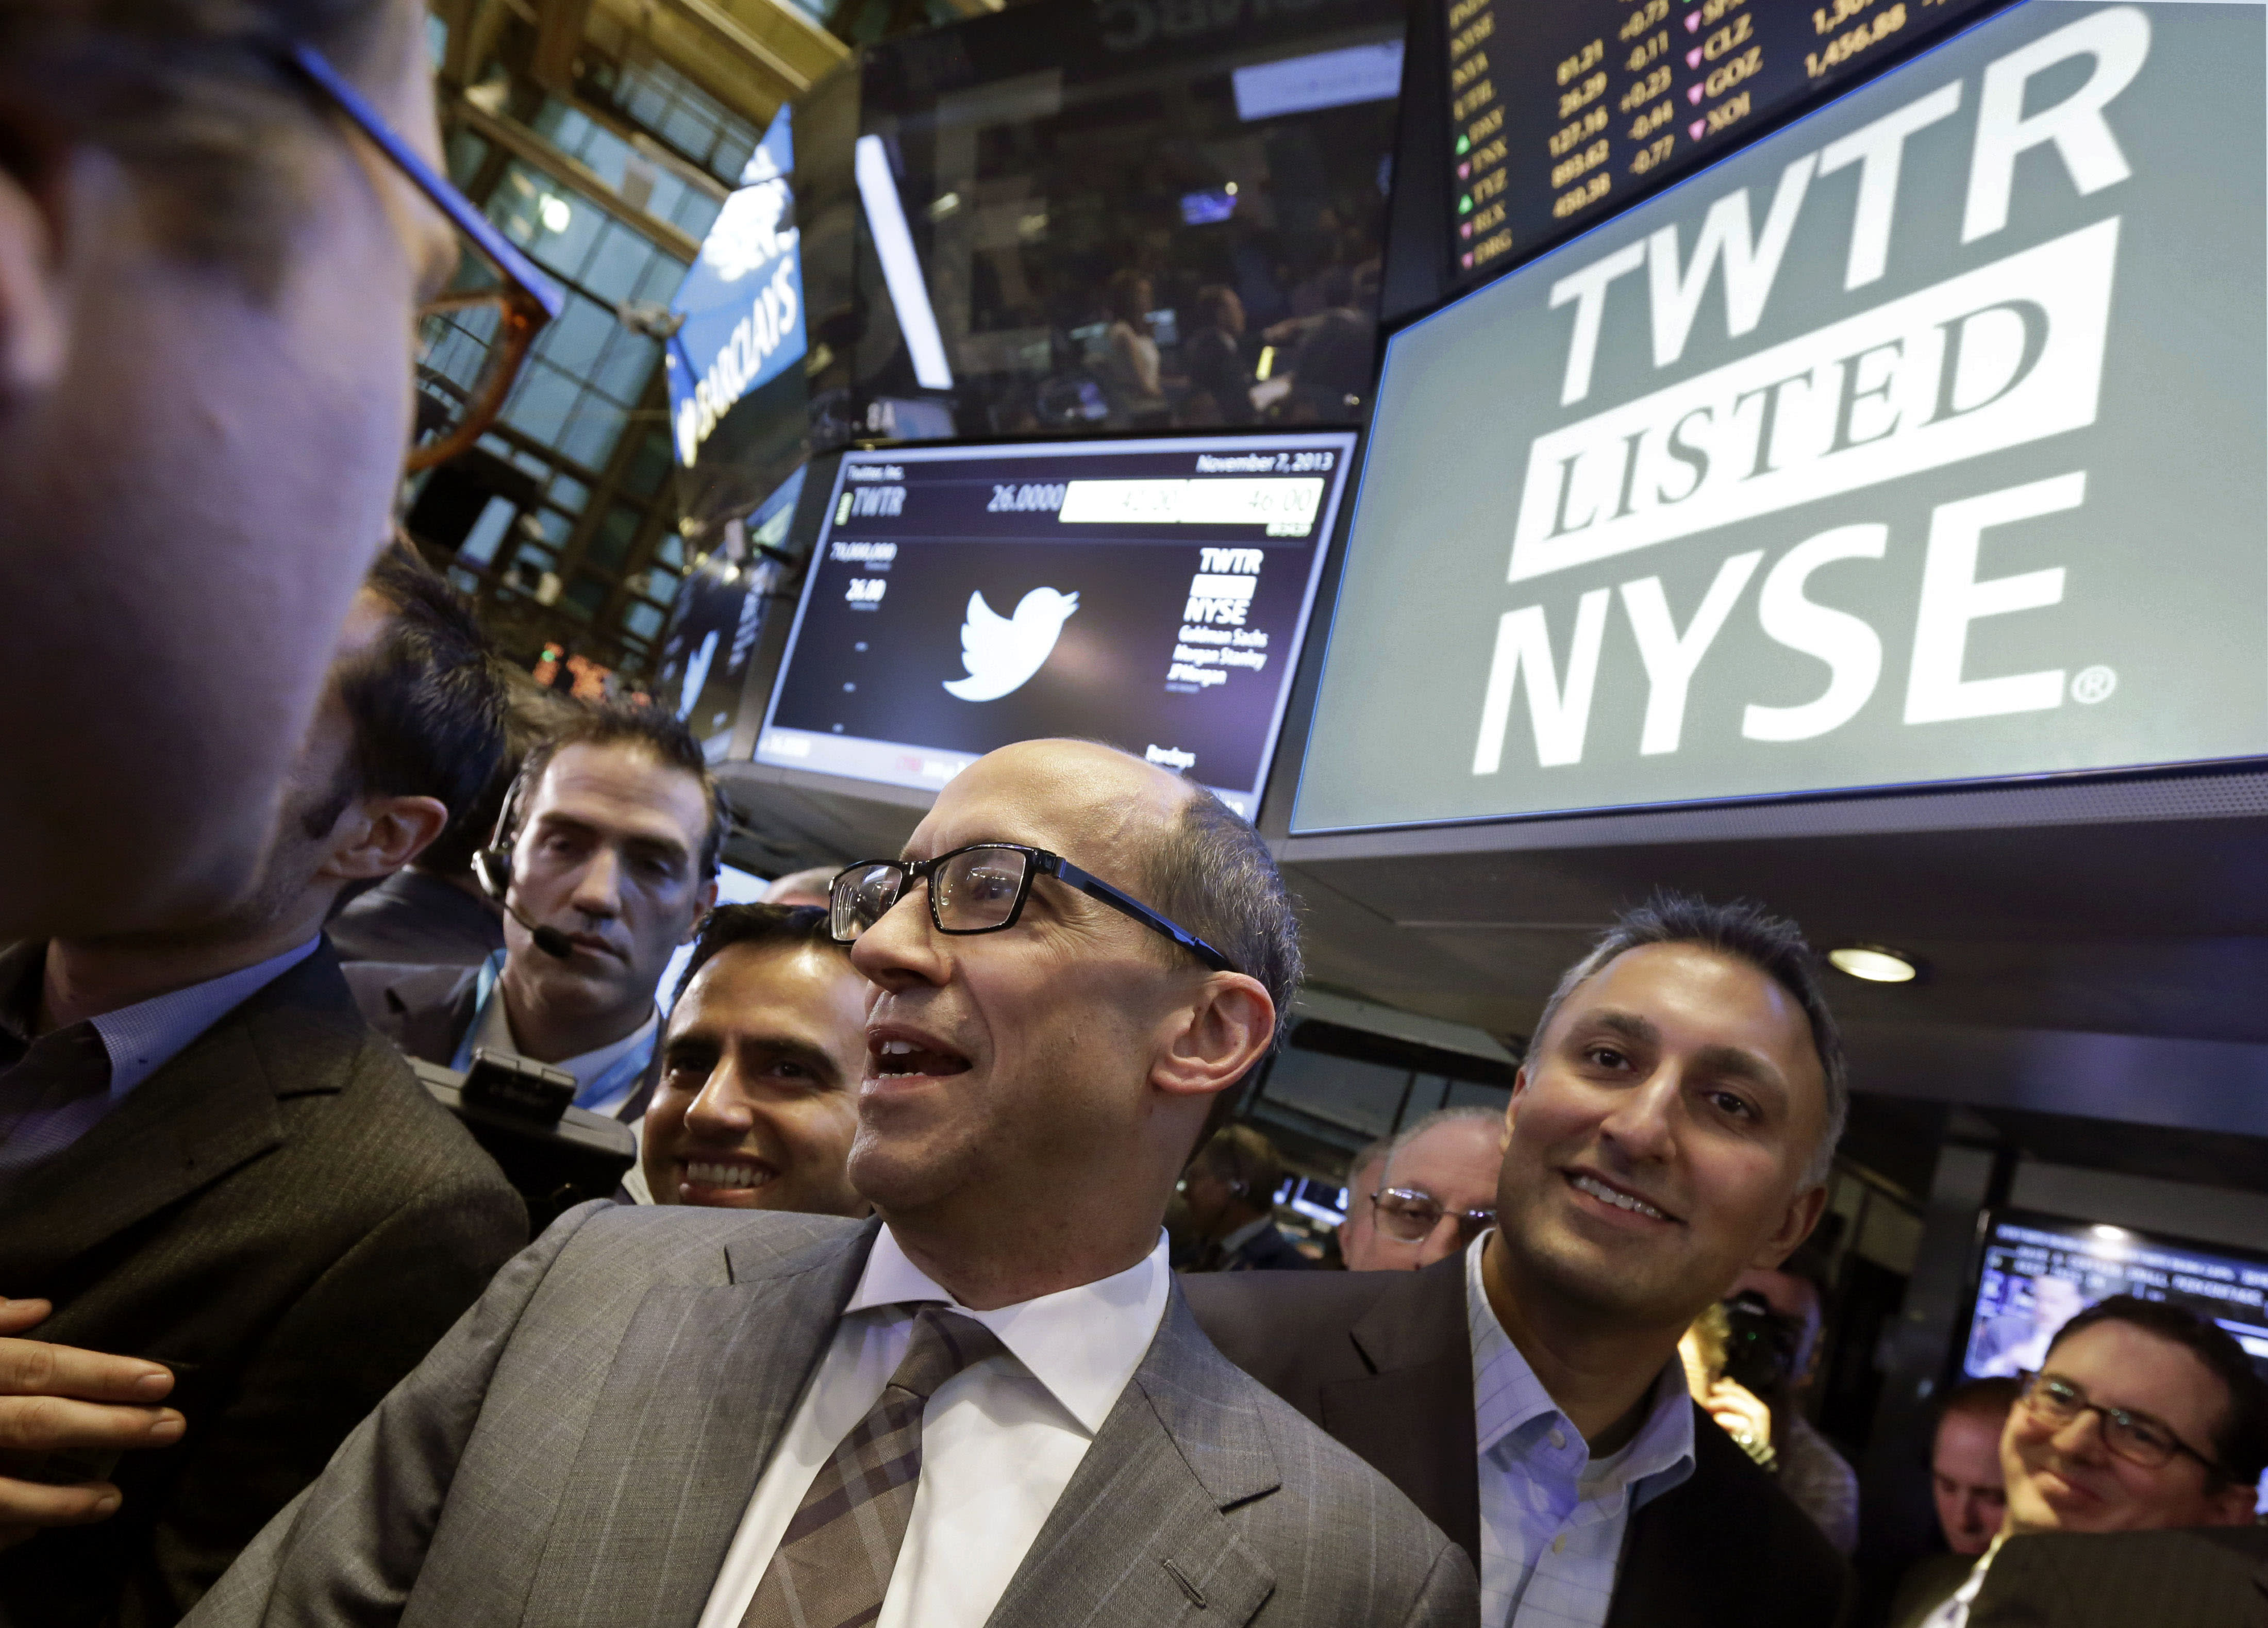 Twitter CEO Dick Costolo, center, and Mike Gupta, chief financial officer of Twitter, wait for shares to begin trading during the IPO, on the floor of the New York Stock Exchange, Thursday, Nov. 7, 2013. If Twitter's bankers and executives were hoping for a surge on the day of the stock's public debut, they got it. The stock opened at $45.10 a share on its first day of trading, 73 percent above its initial offering price. (AP Photo/Richard Drew)